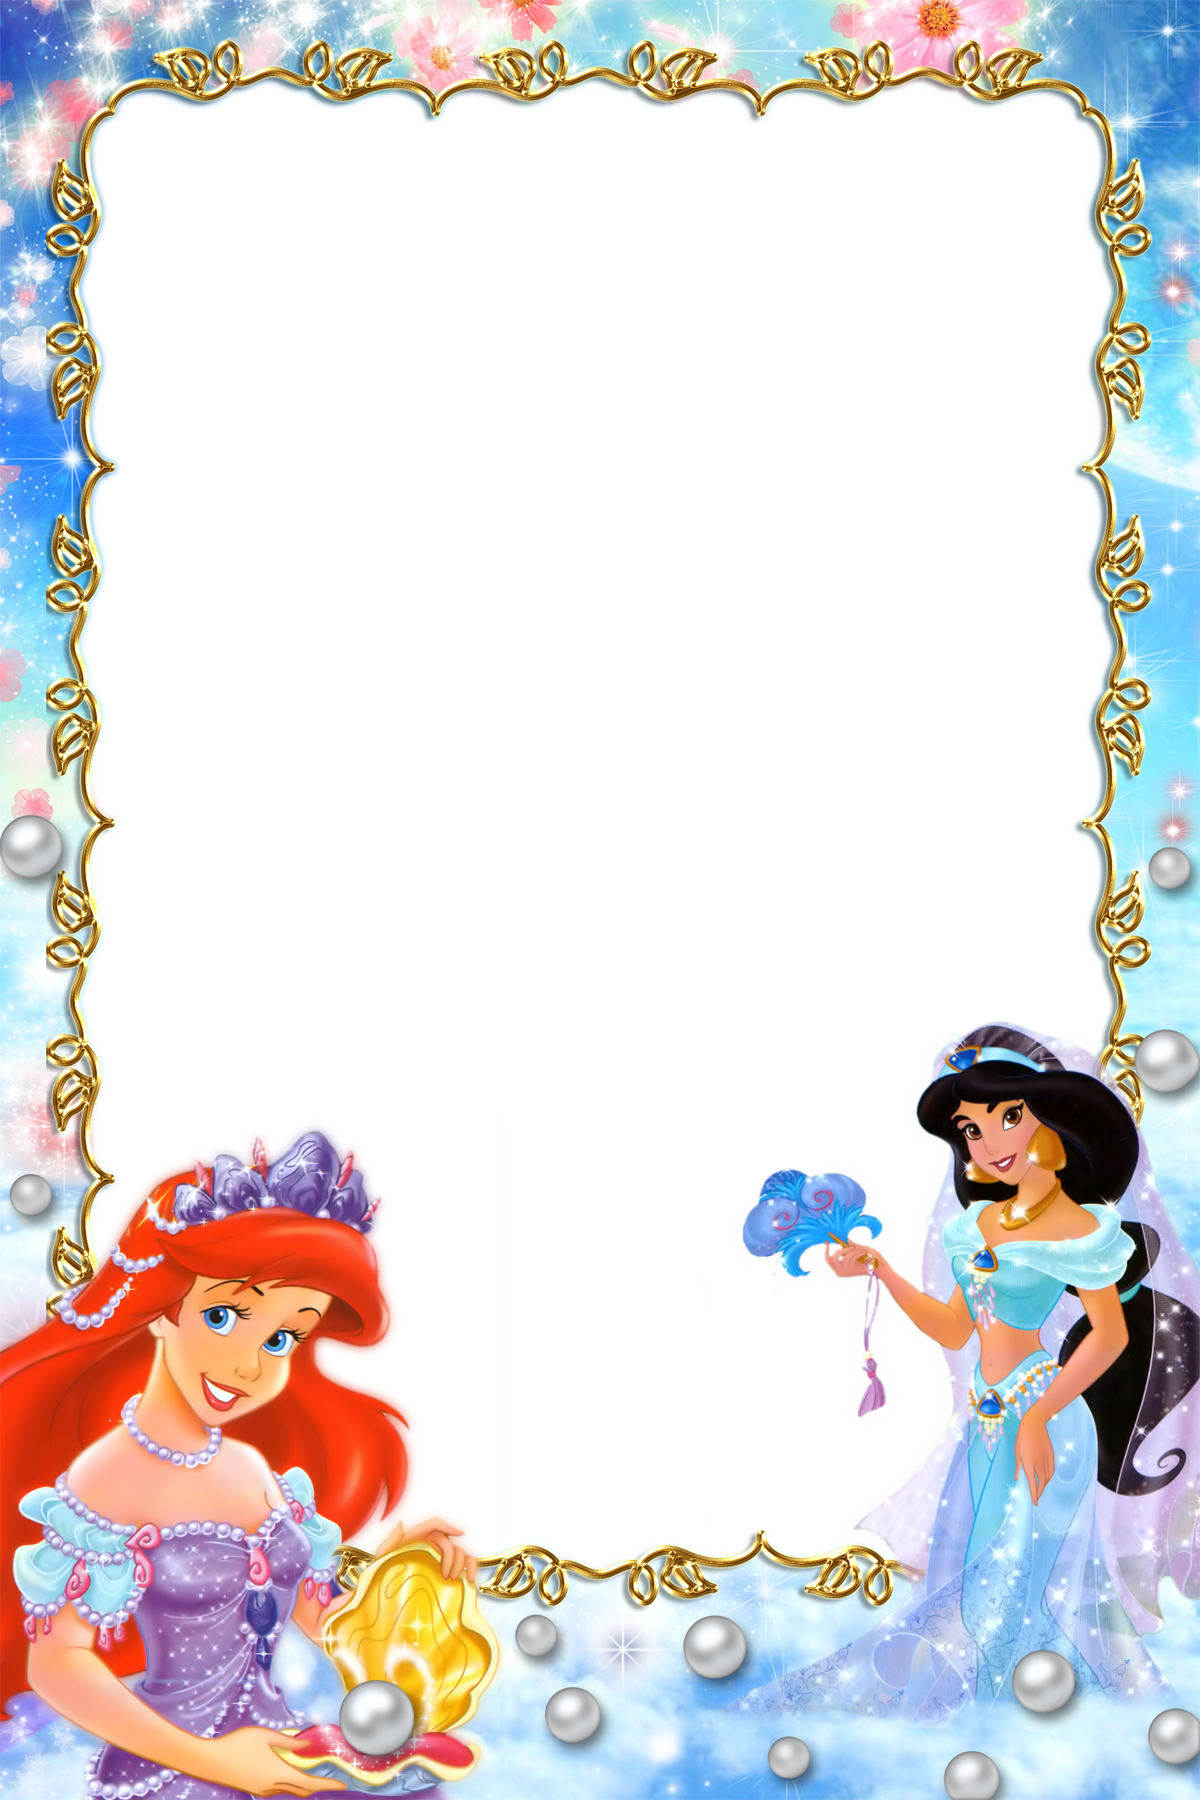 Fav princesses borders and. Worm clipart border